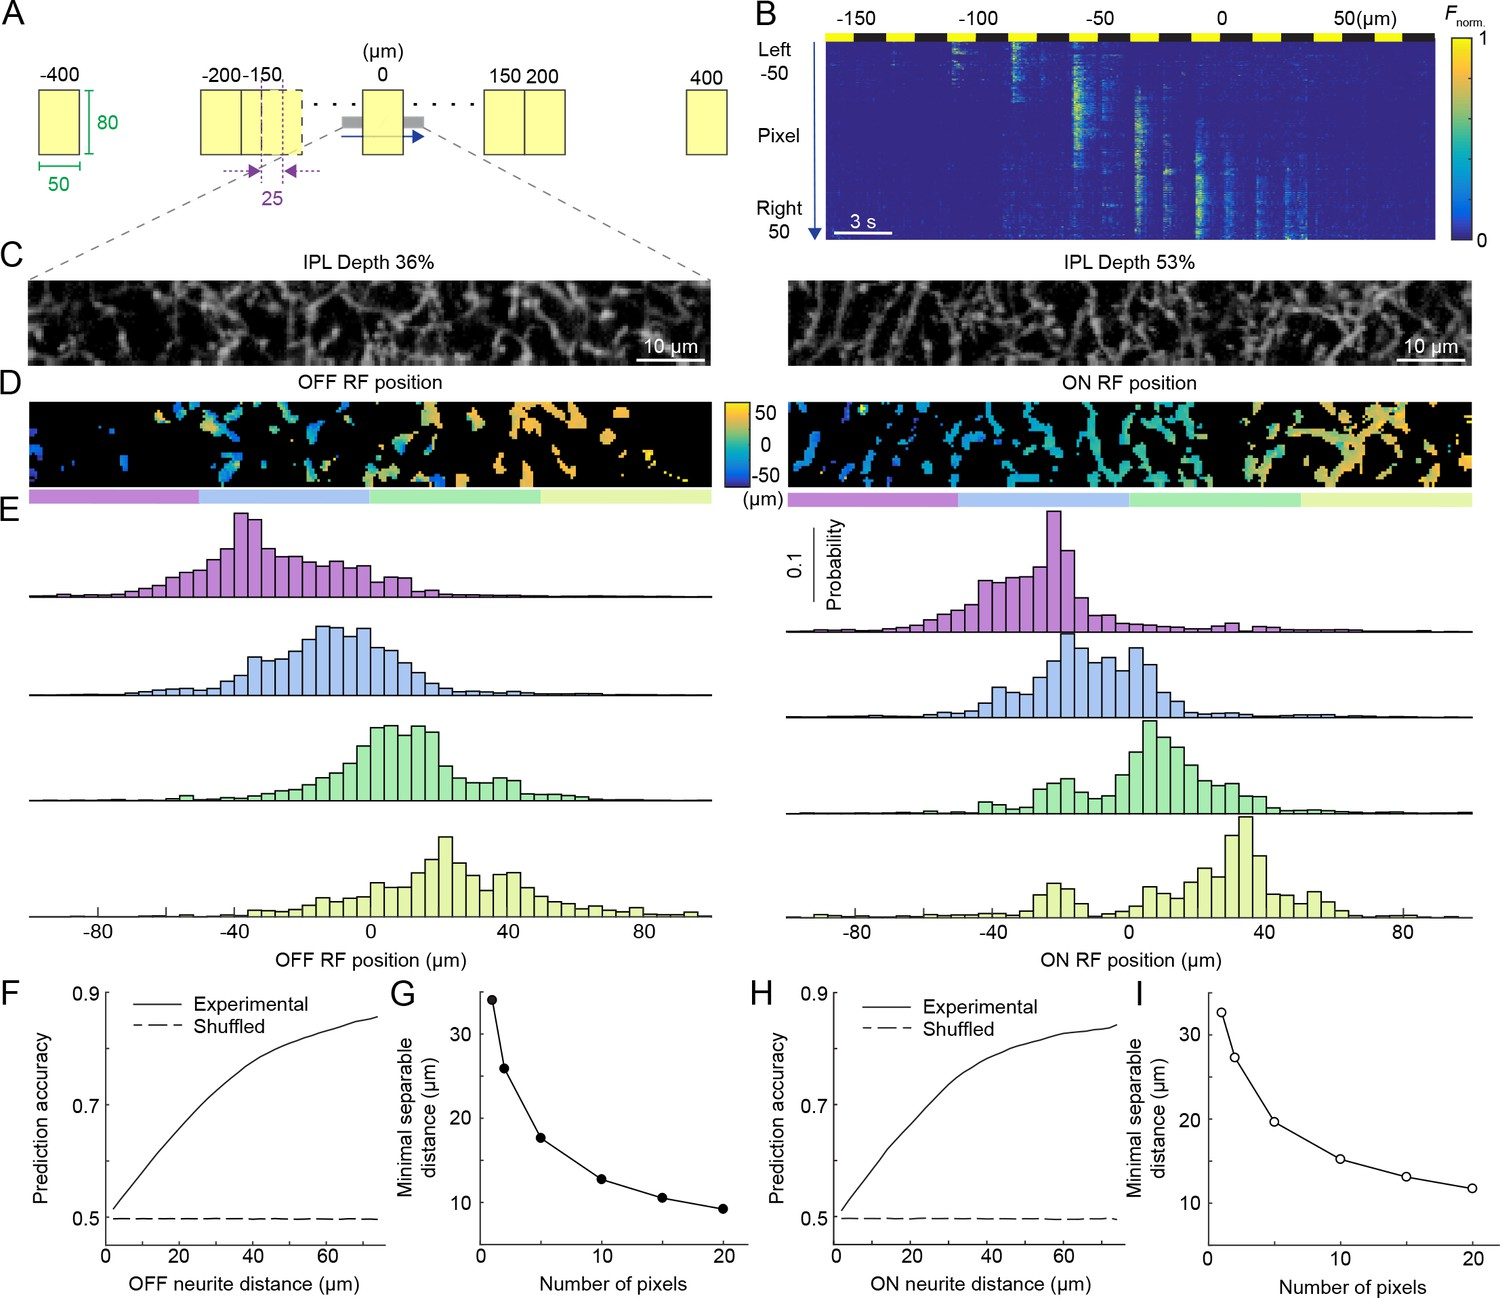 Local Processing In Neurites Of Vglut3 Expressing Amacrine Cells Ac Voltage Detector Circuit Related Keywords Suggestions Population Activity The Vg3 Plexus Encodes Spatial Information With High Precision